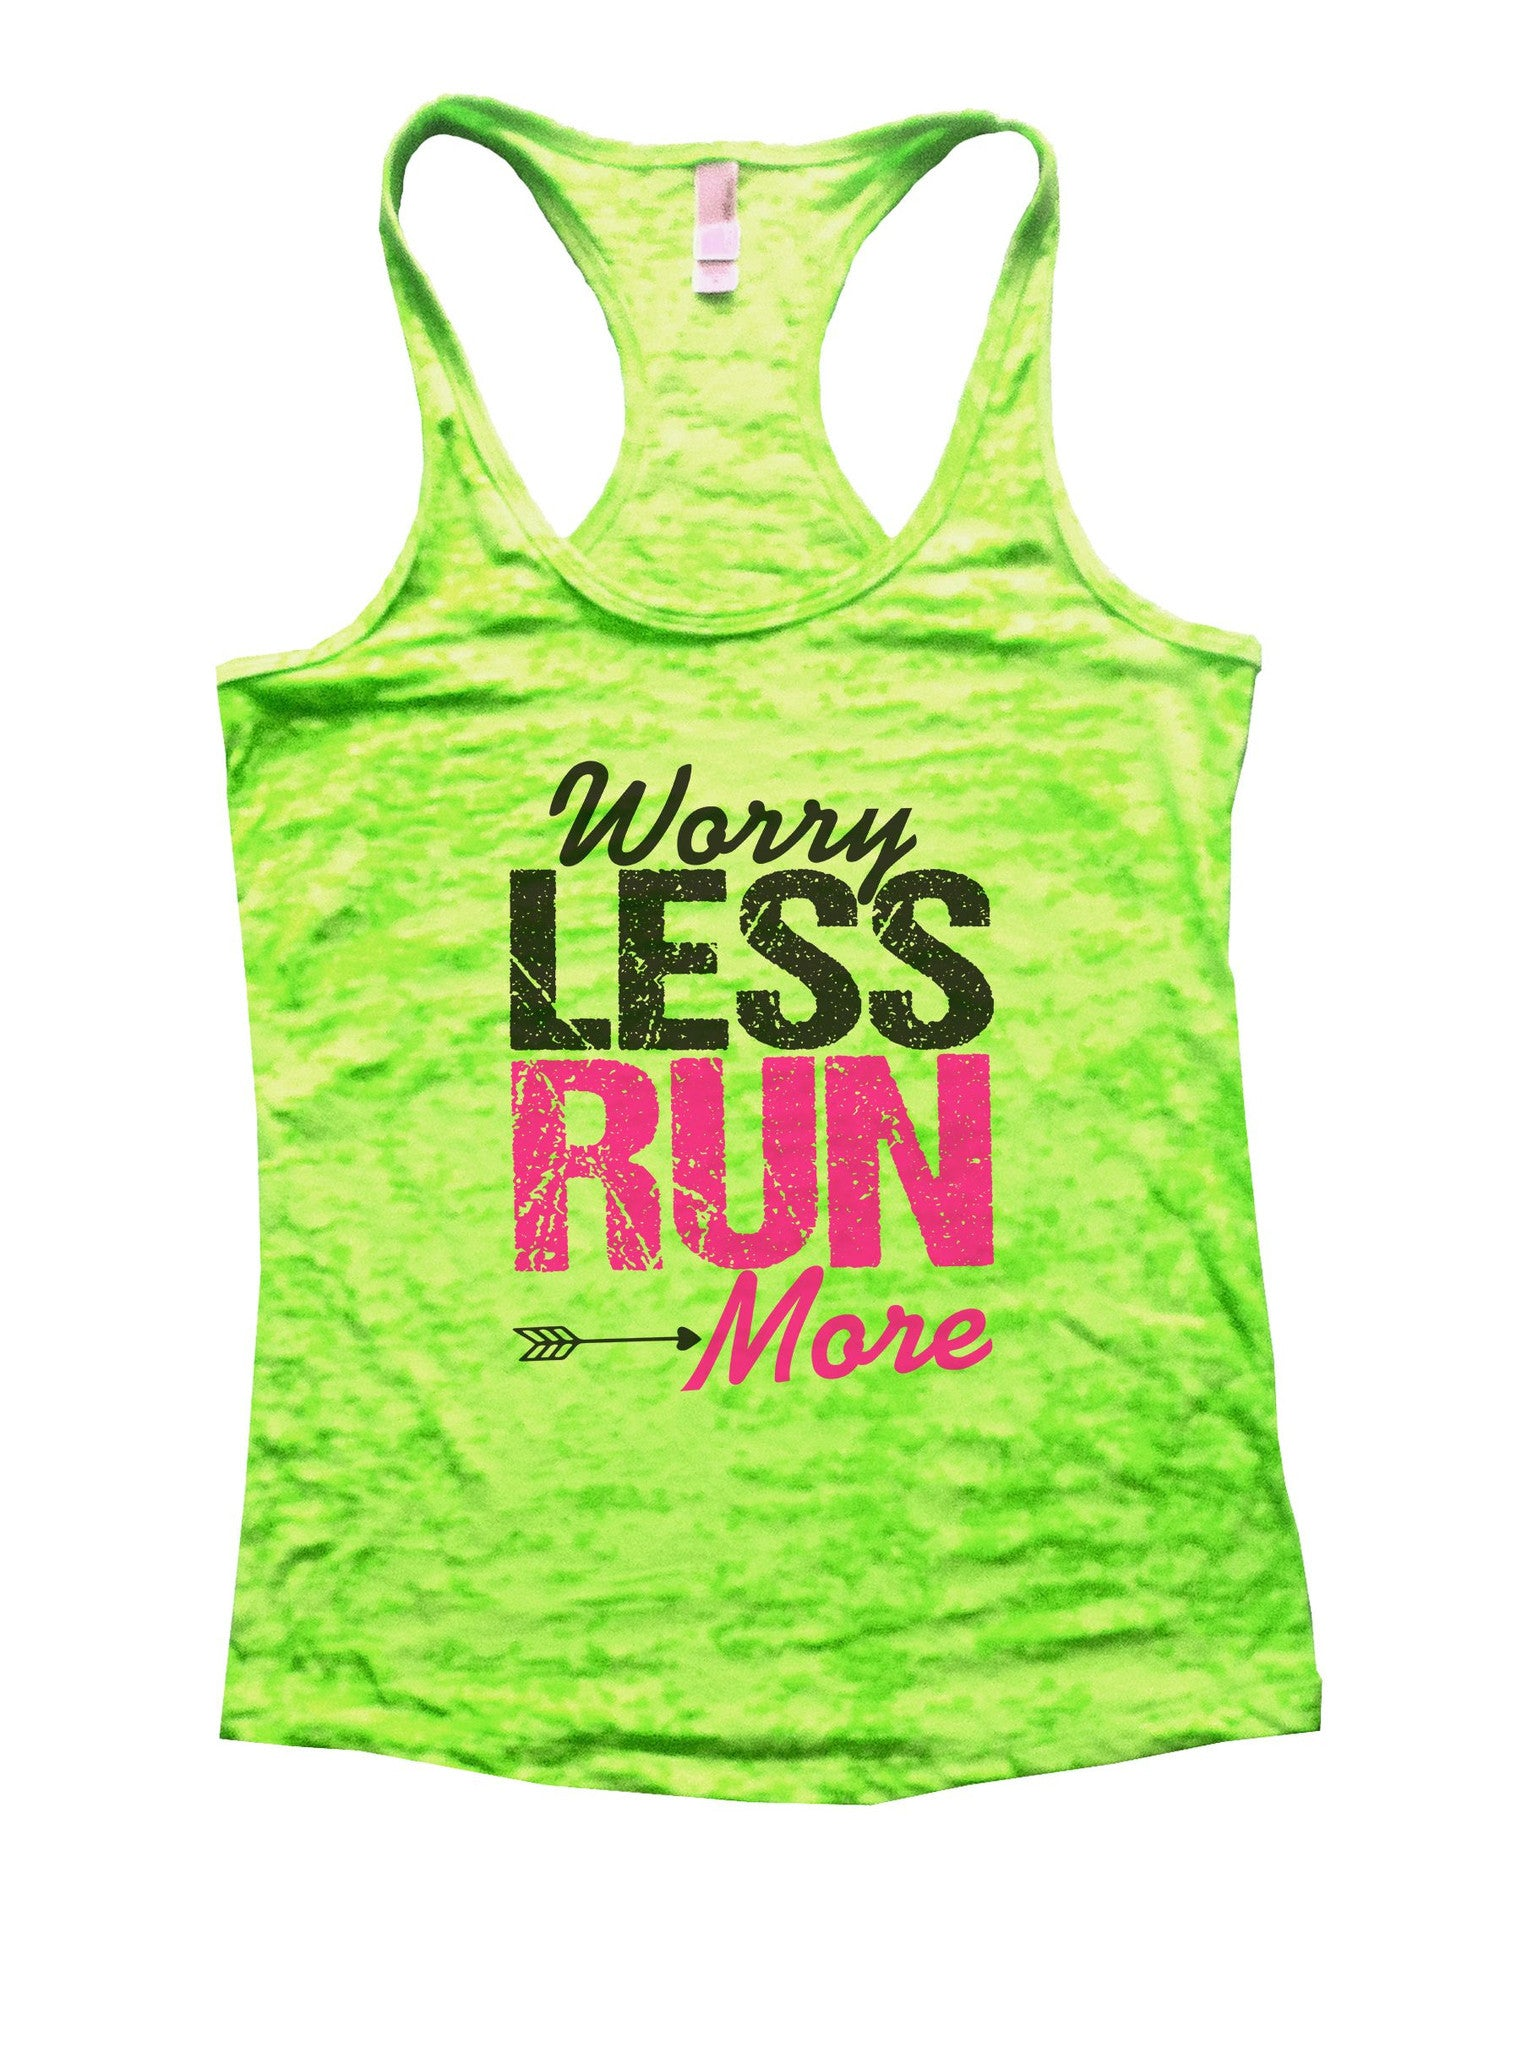 Worry Less Run More Burnout Tank Top By BurnoutTankTops.com - 1019 - Funny Shirts Tank Tops Burnouts and Triblends  - 1